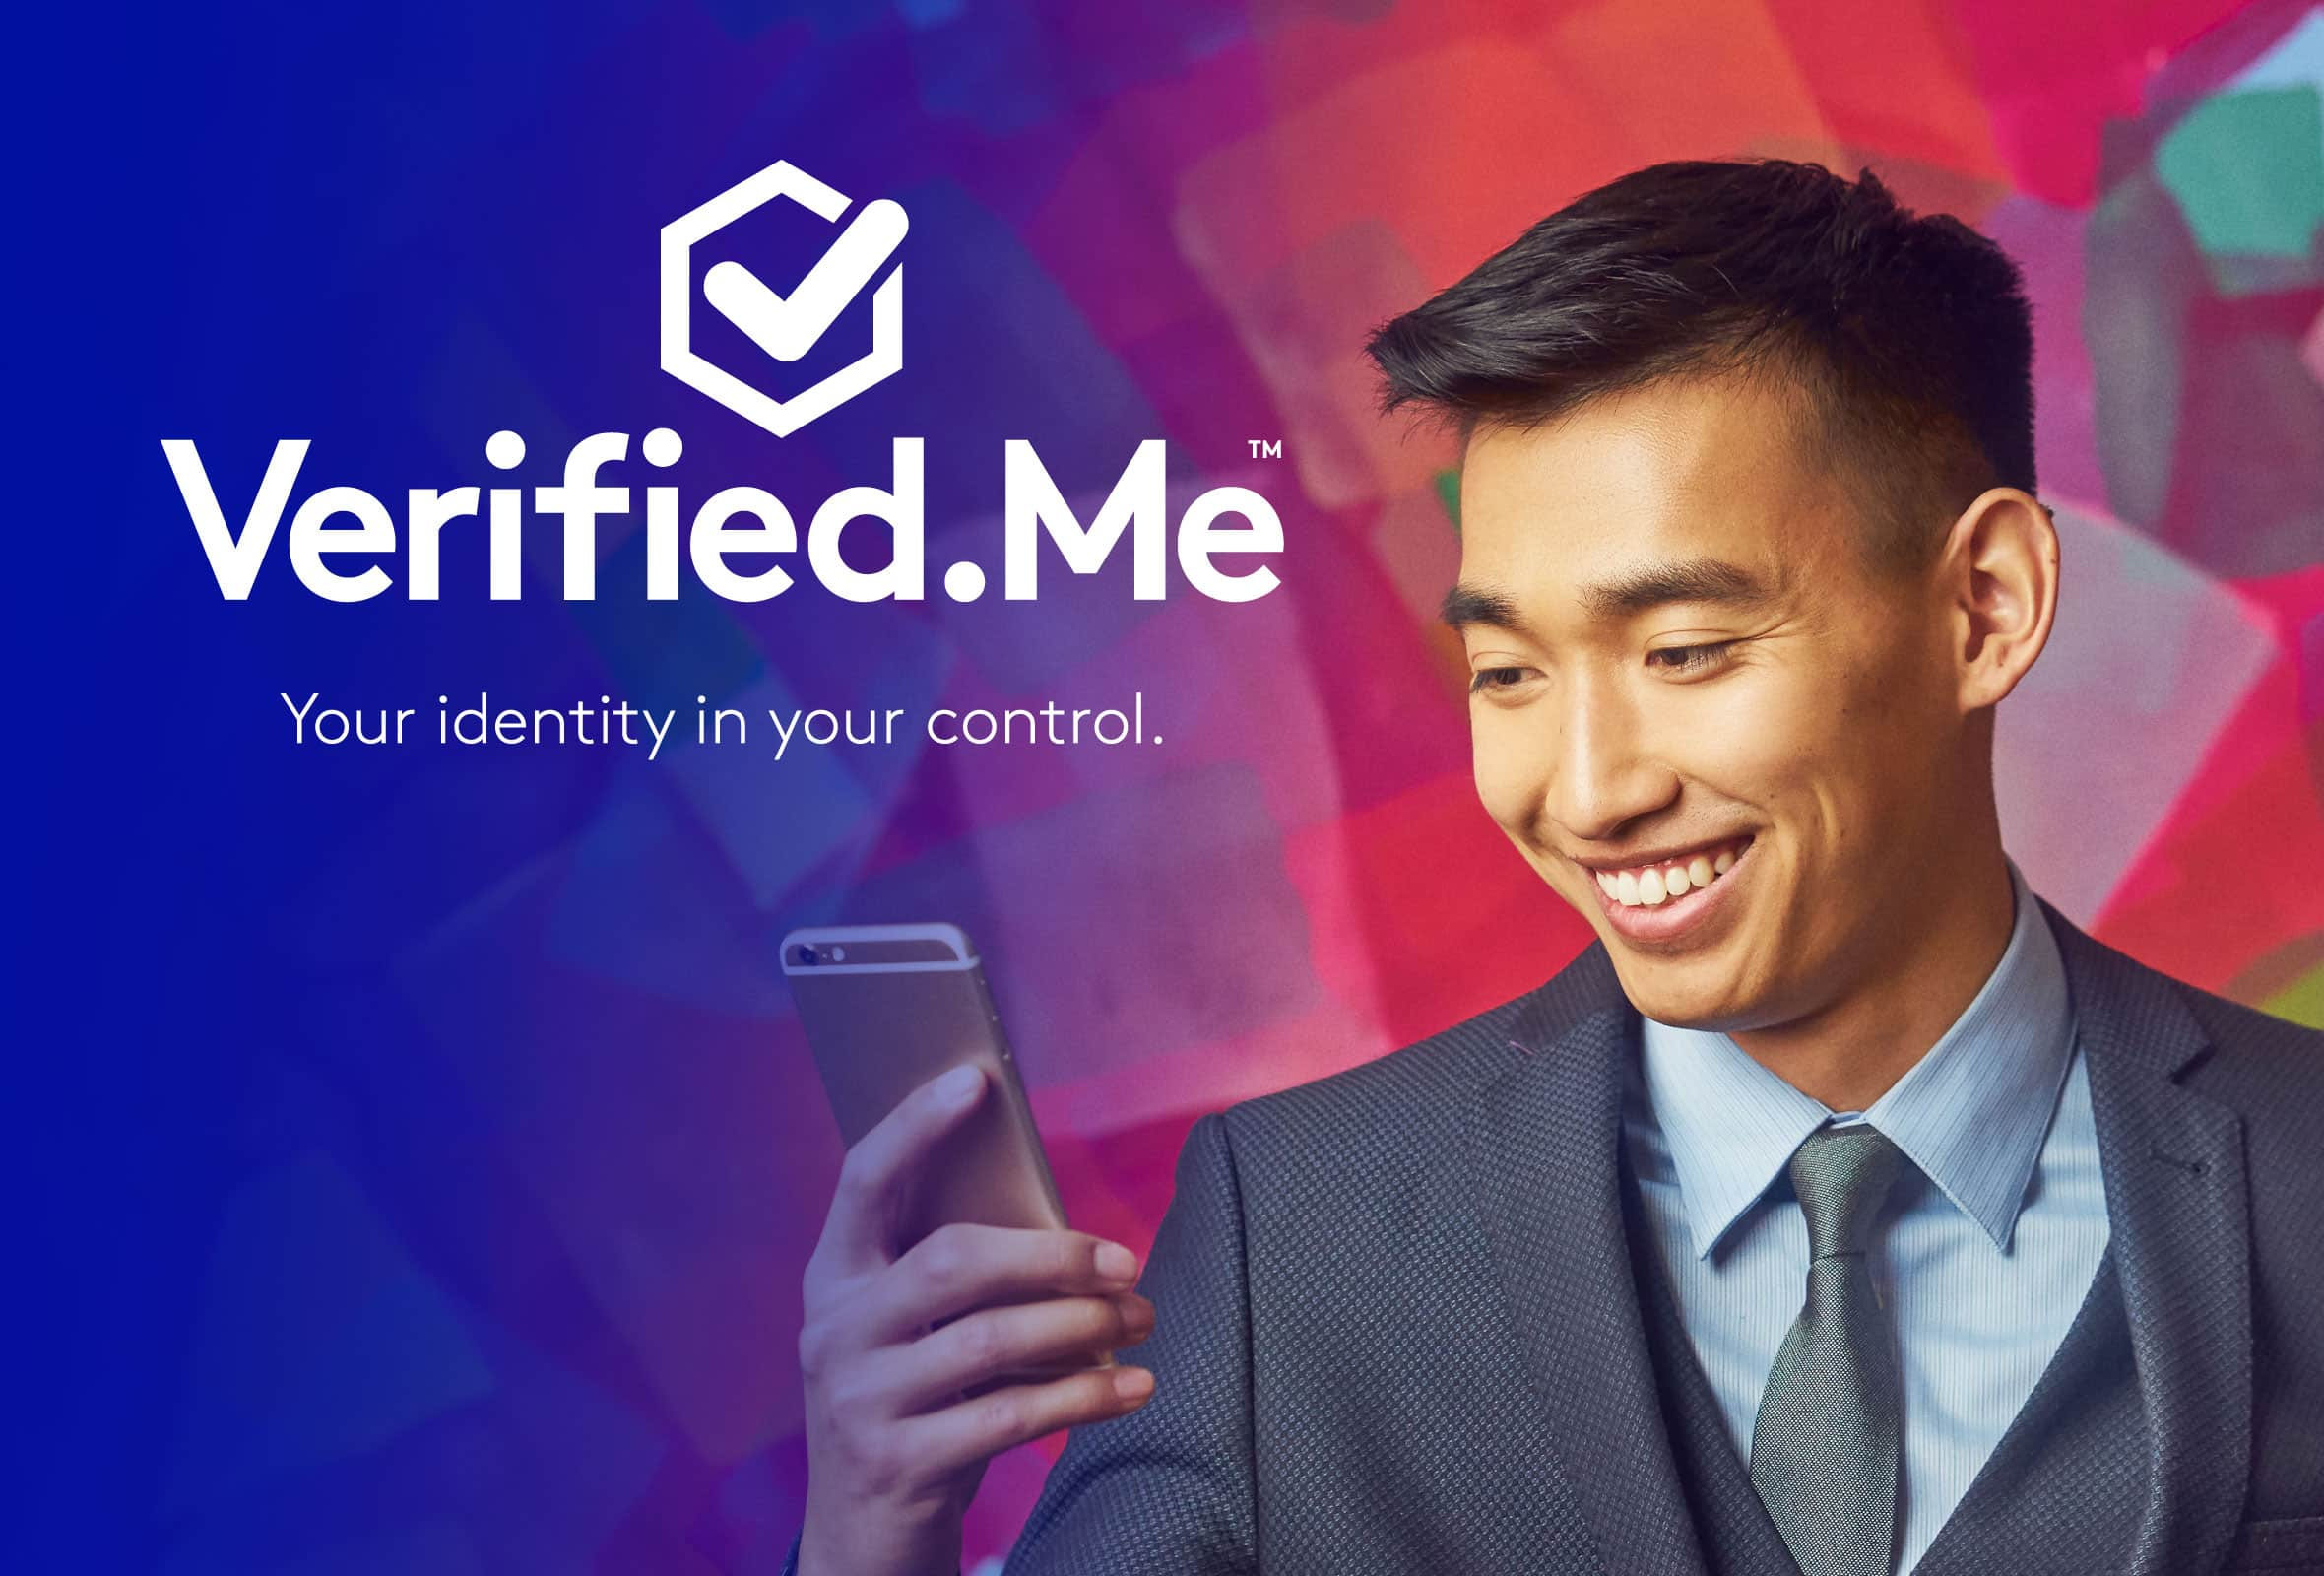 Verified.Me | Brand Identity, Website + Marketing Launch